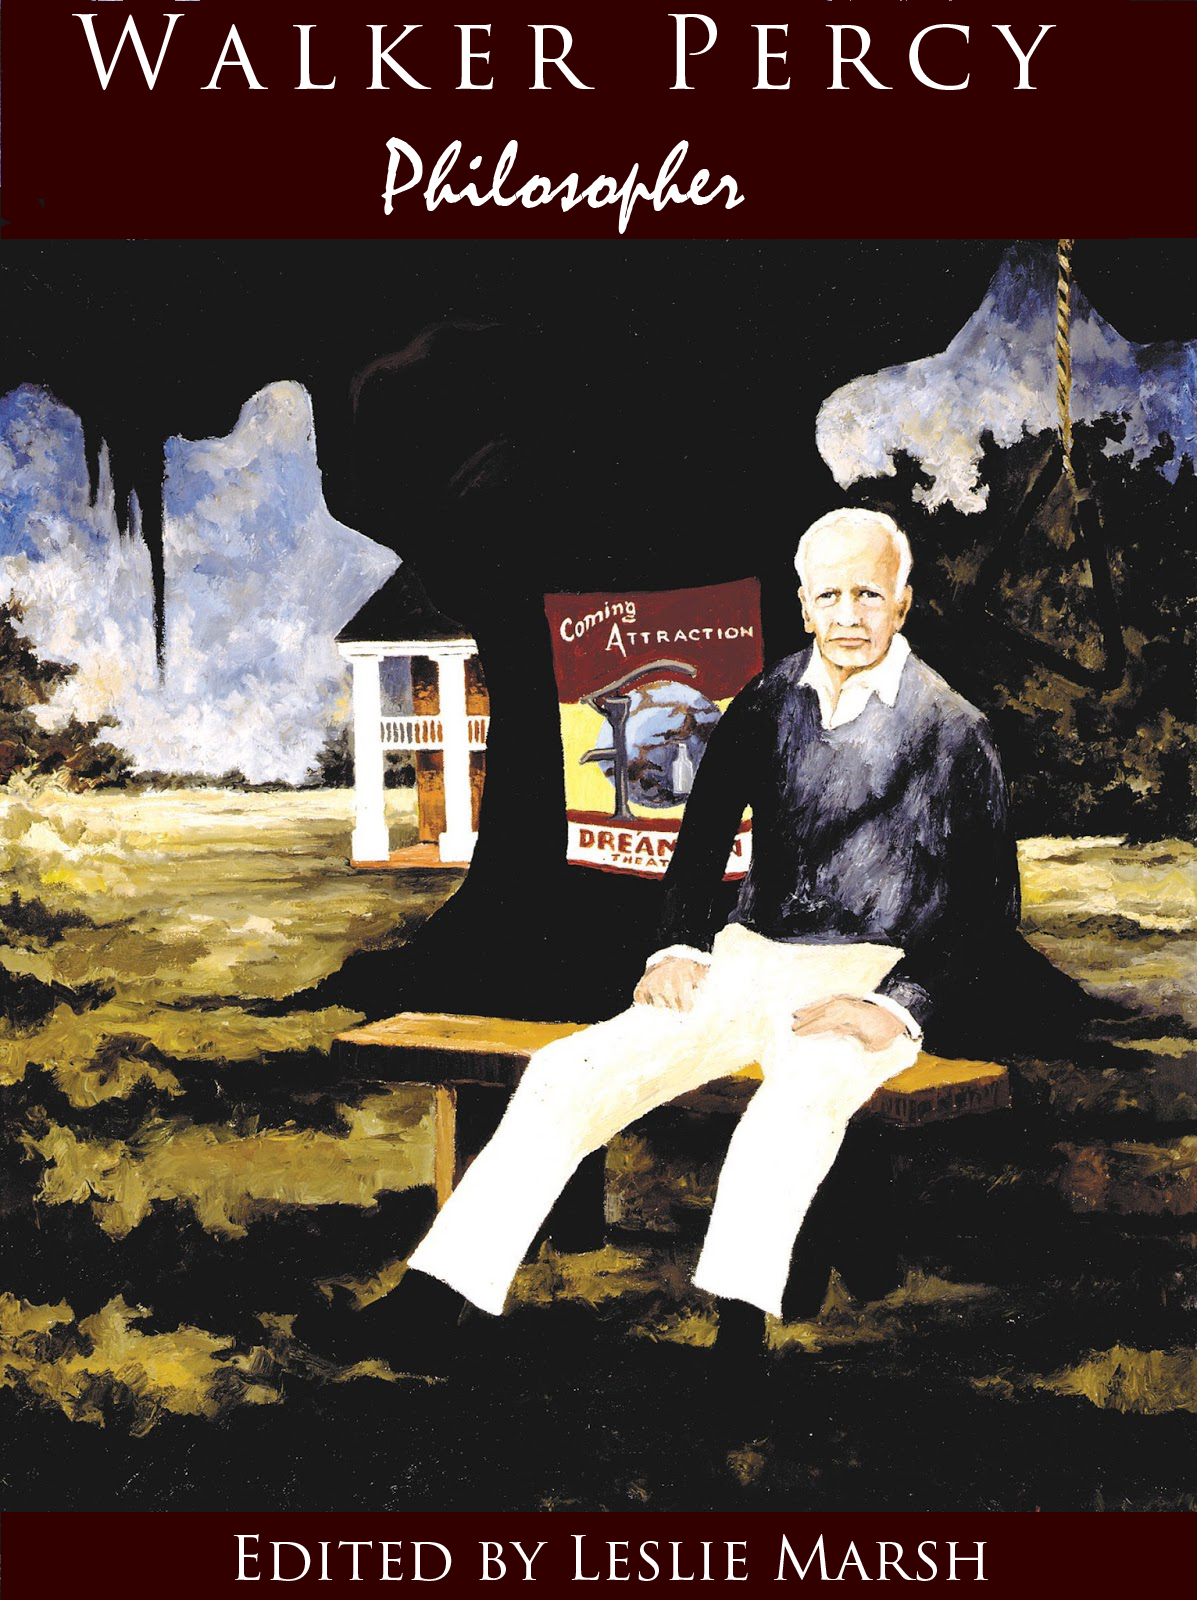 walker percy Walker percy died 20 years ago today he is best known as the author of the  moviegoer, which won the national book award for fiction in 1962.